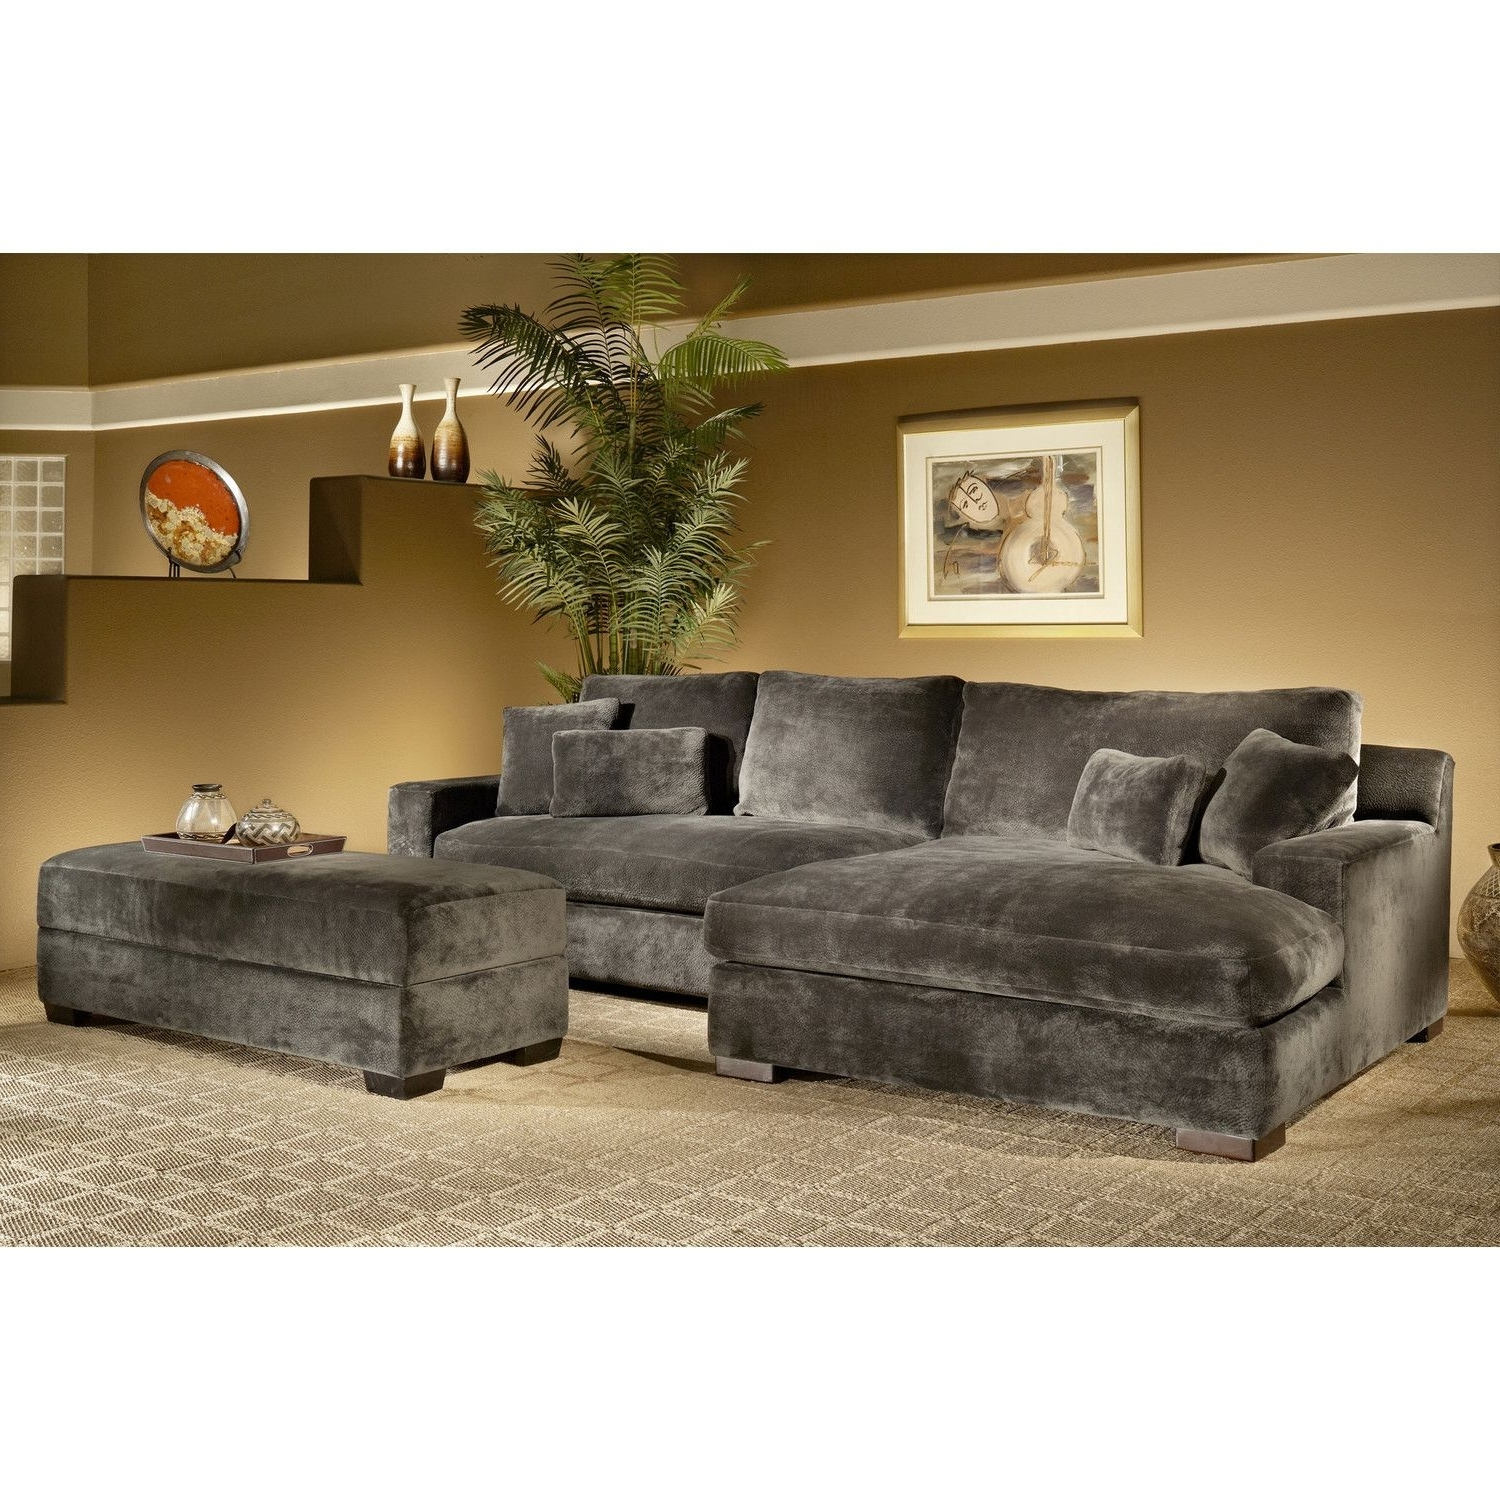 Popular Free Shipping! Shop Wayfair For Sage Avenue Bailey Sectional Pertaining To Wayfair Sectional Sofas (View 9 of 20)